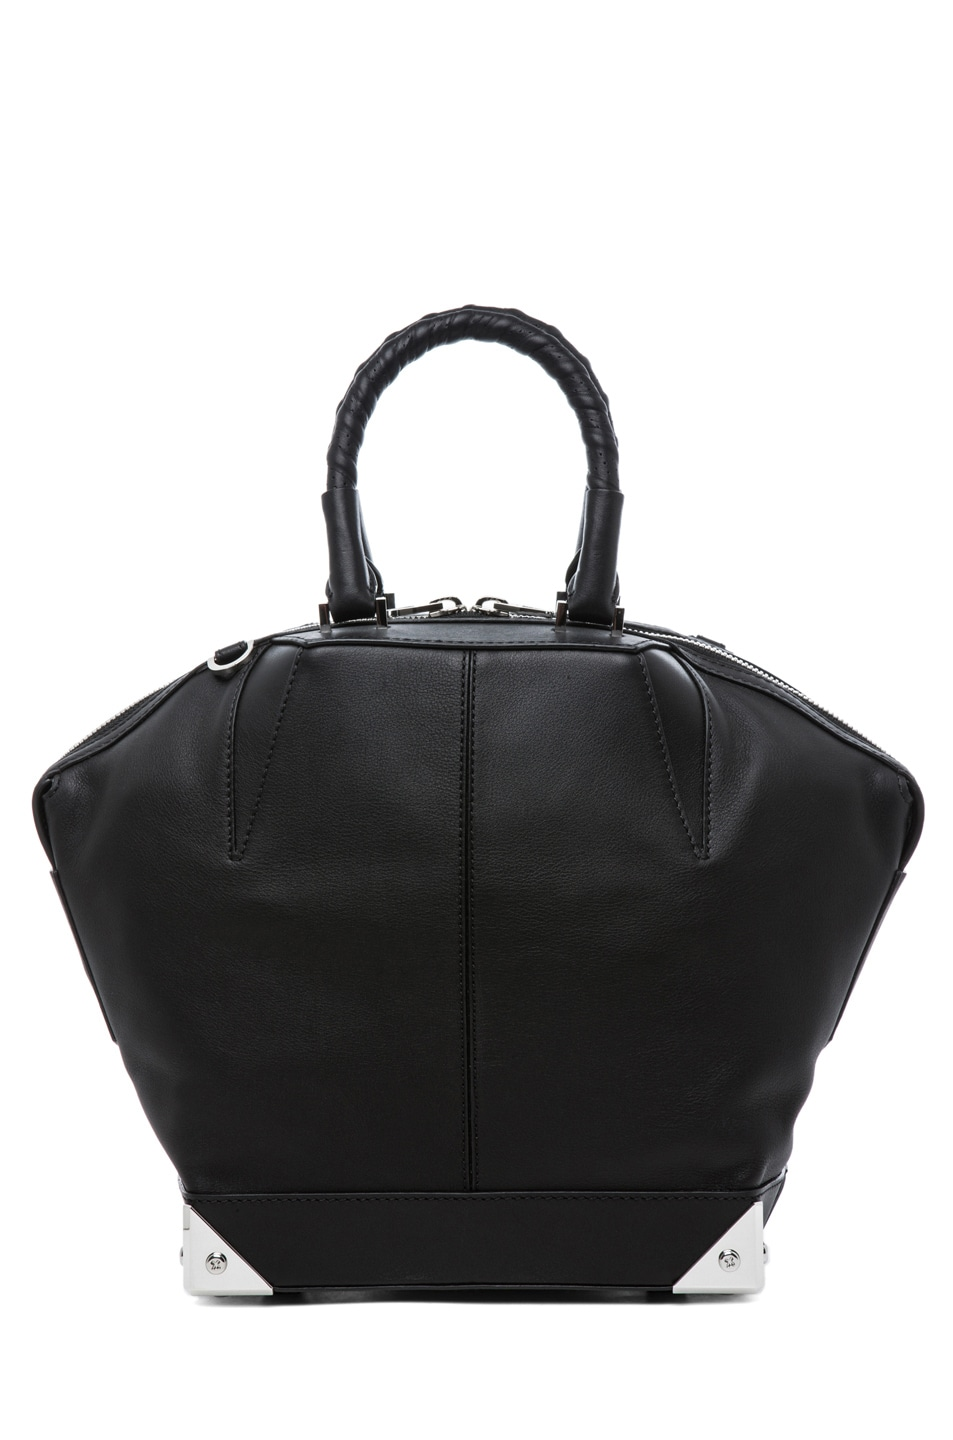 Image 2 of Alexander Wang Small Emilie Satchel with Bike Handle in Black